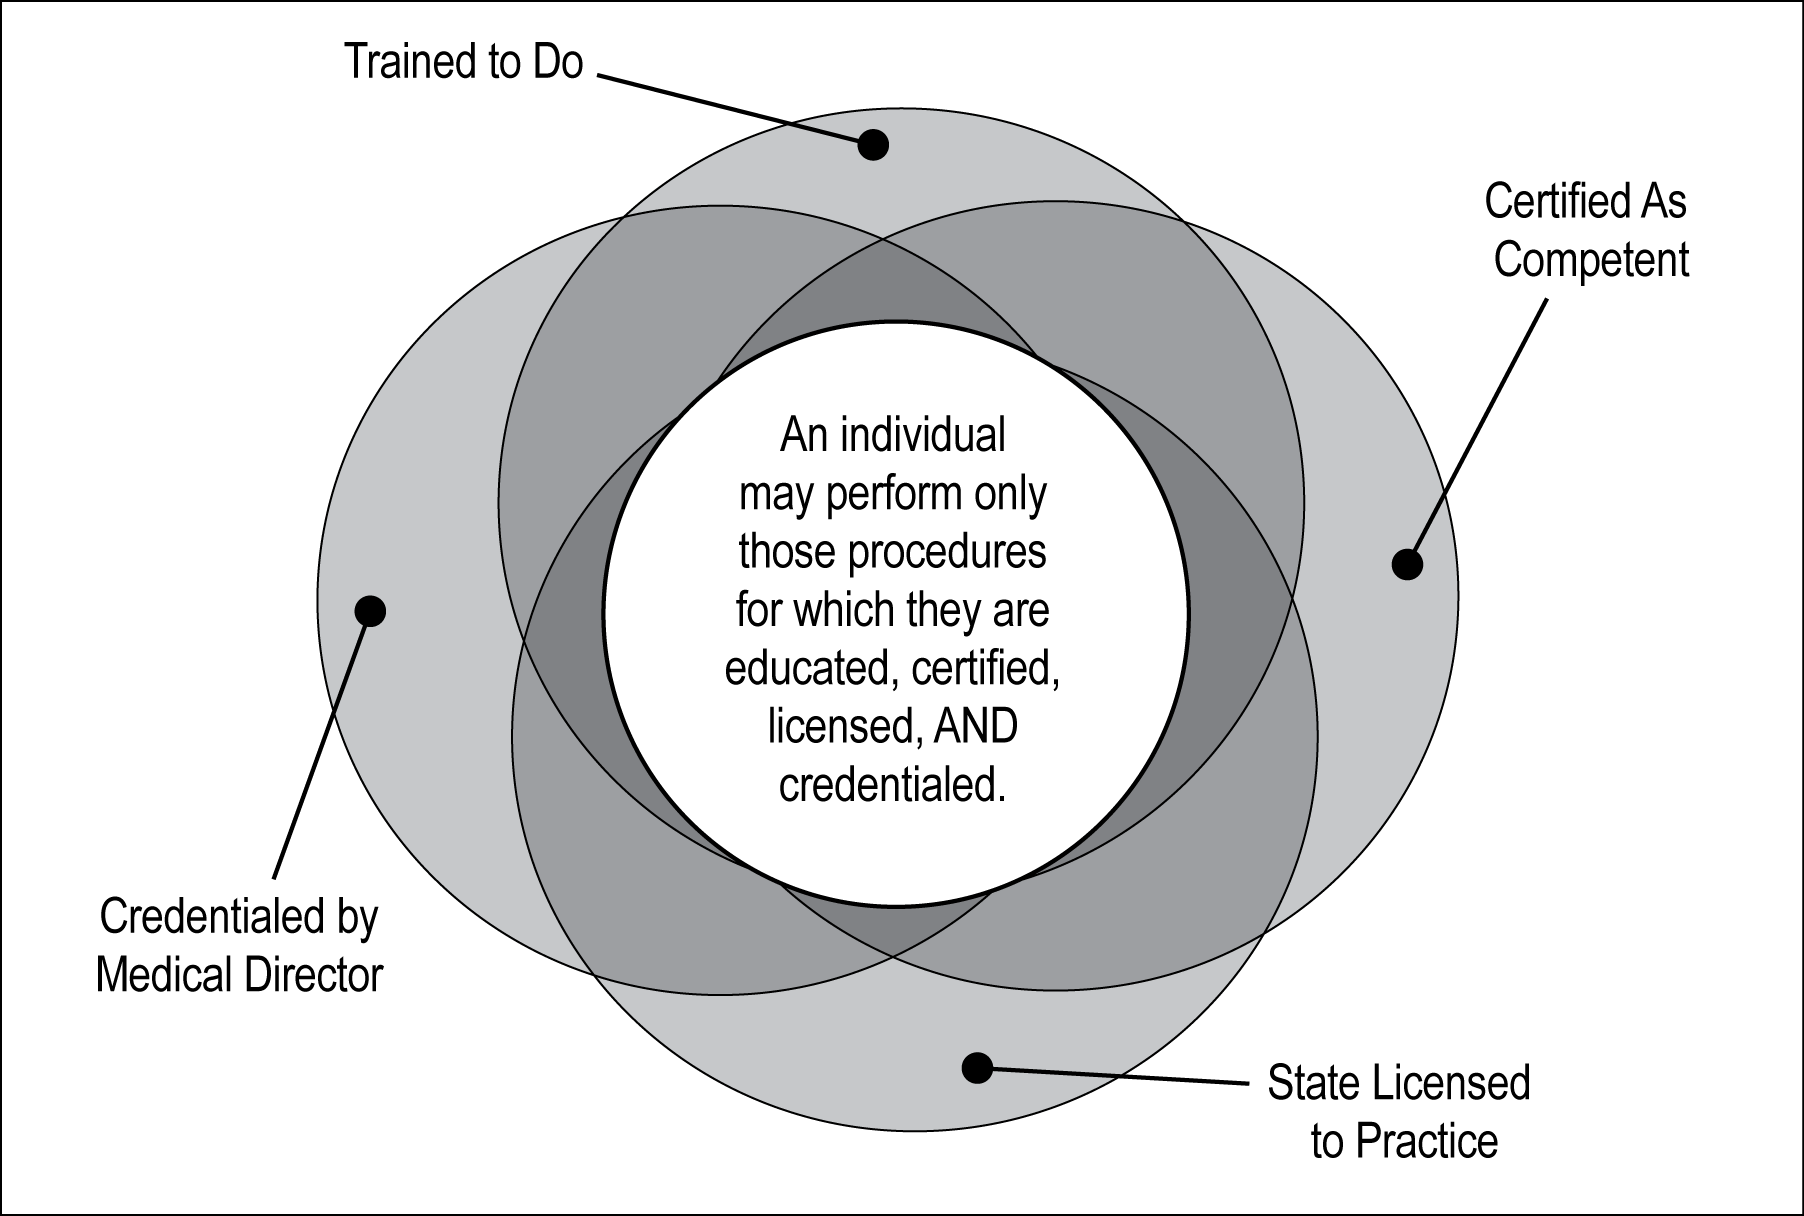 Fig 1: The Relationship among education, certification, licensure, and credentialing.